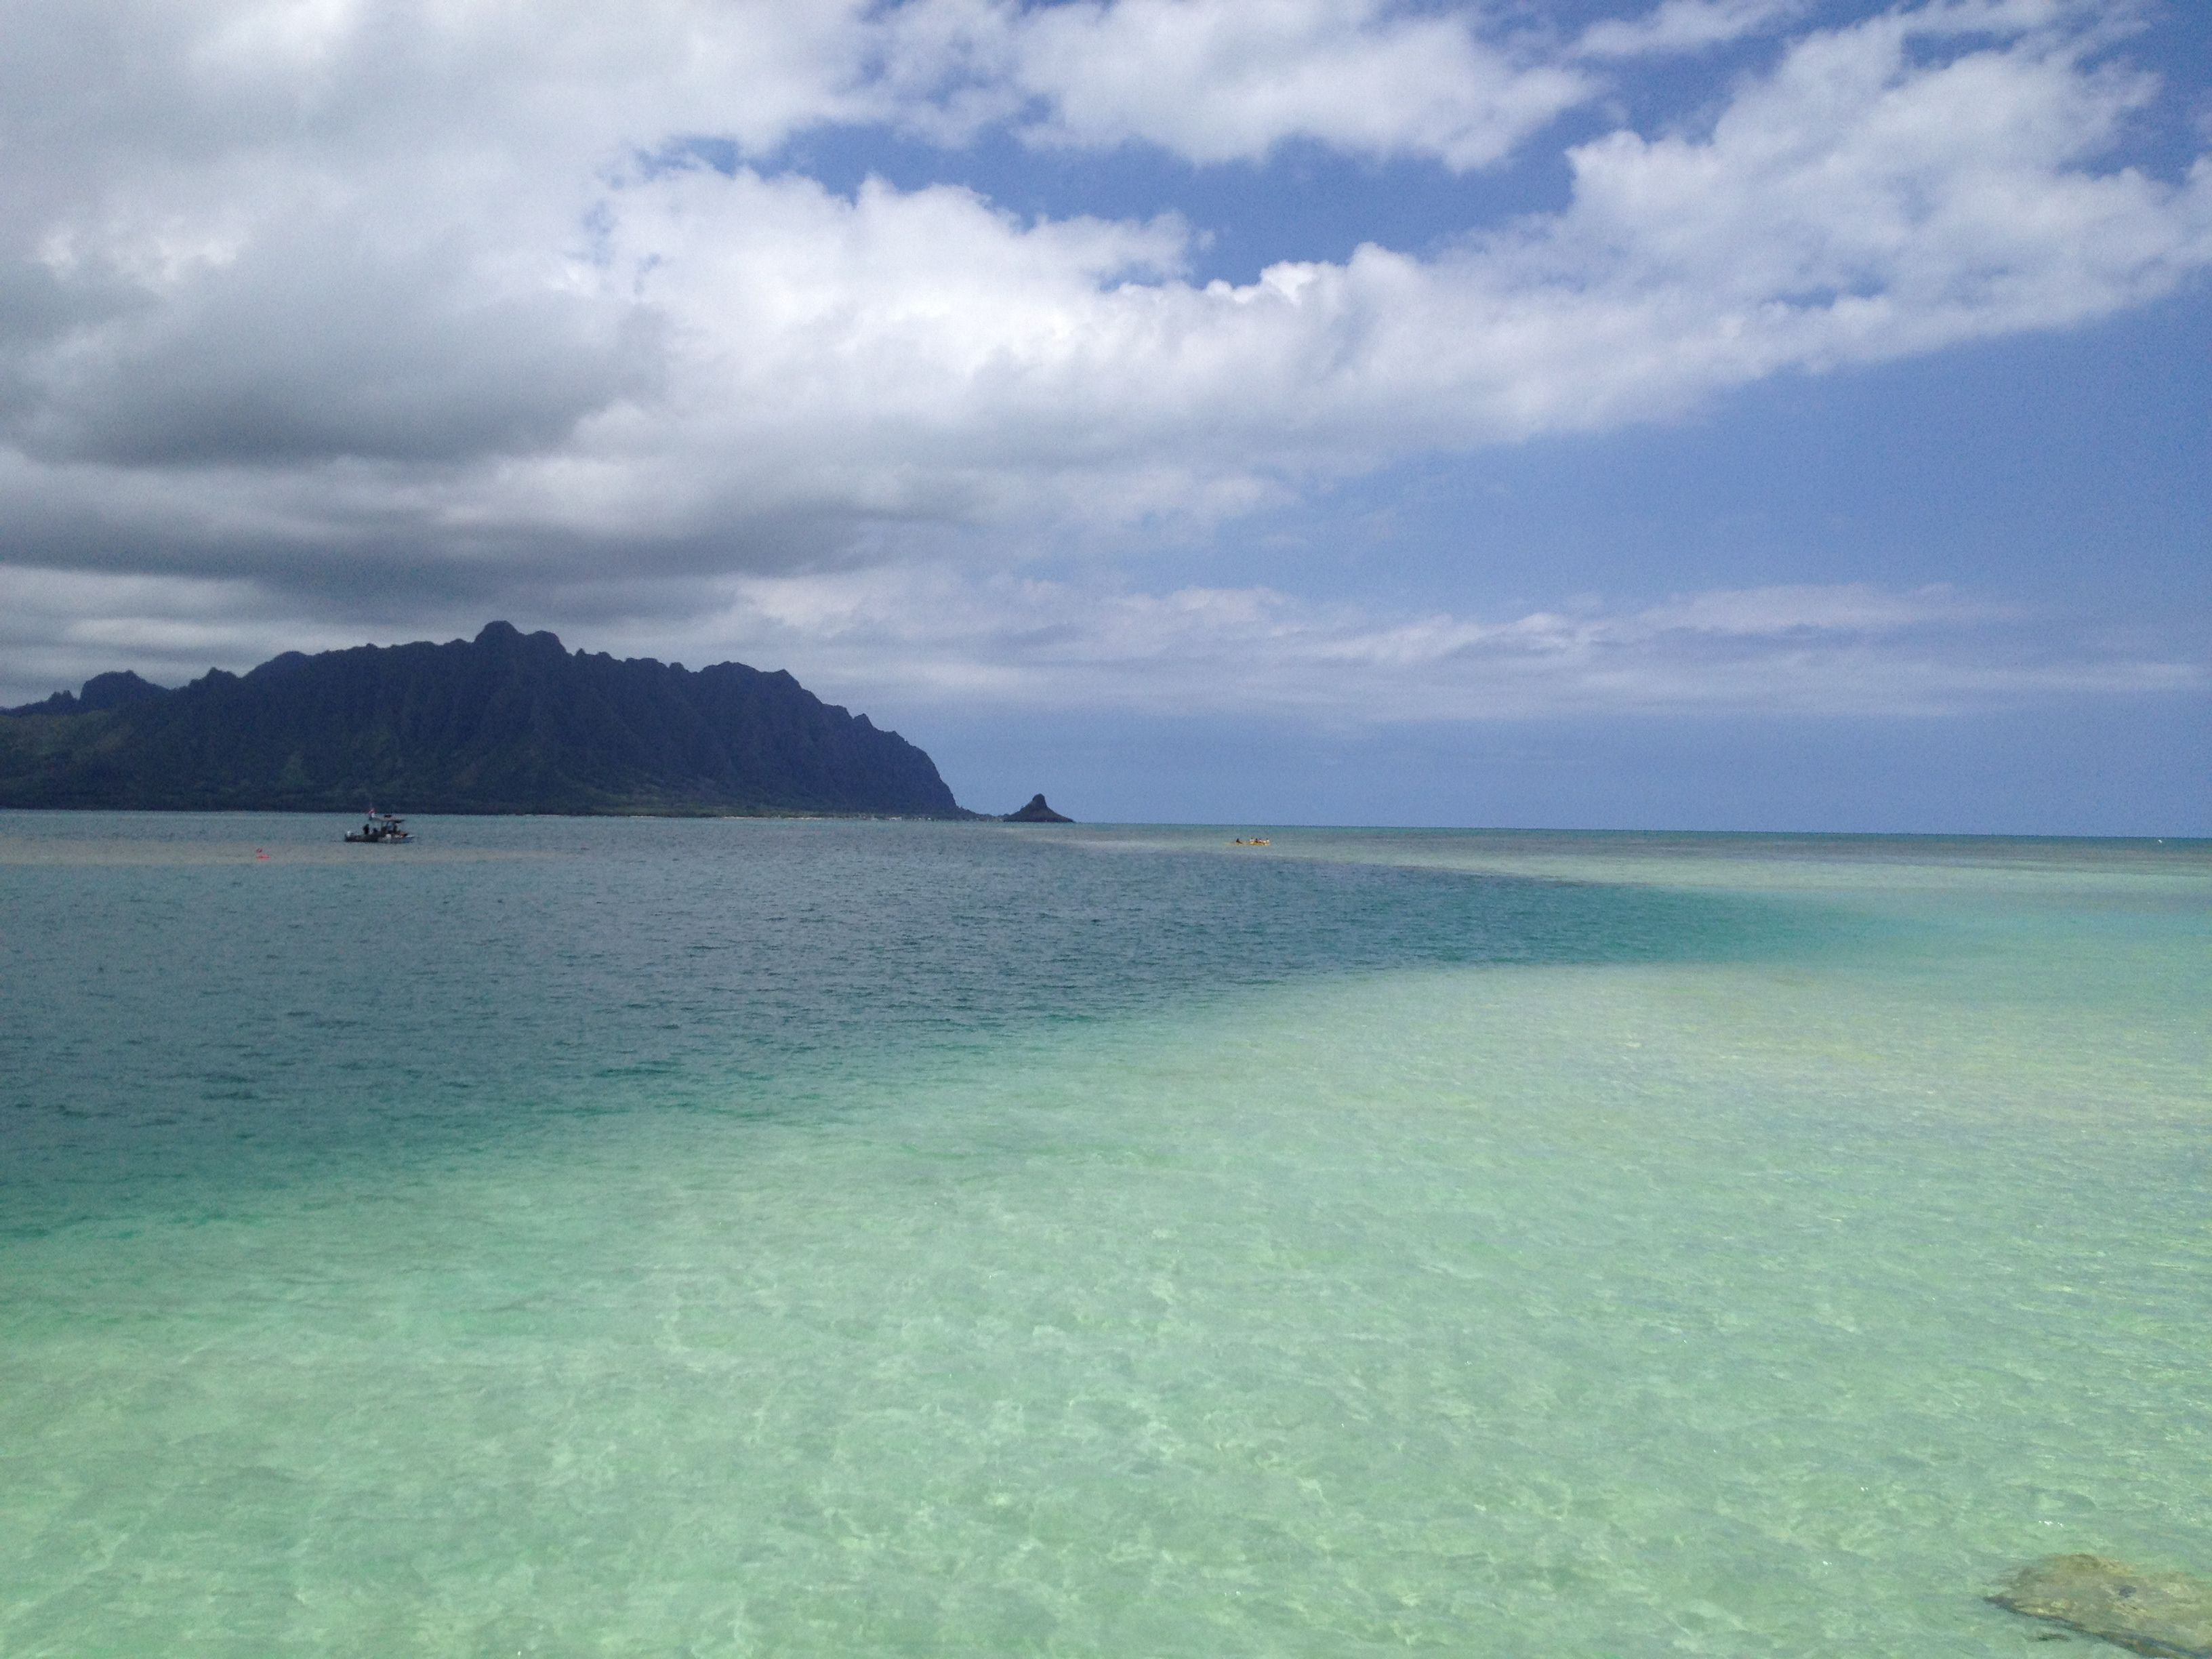 View Kaneohe Bay Sandbar Oahu Hawaii